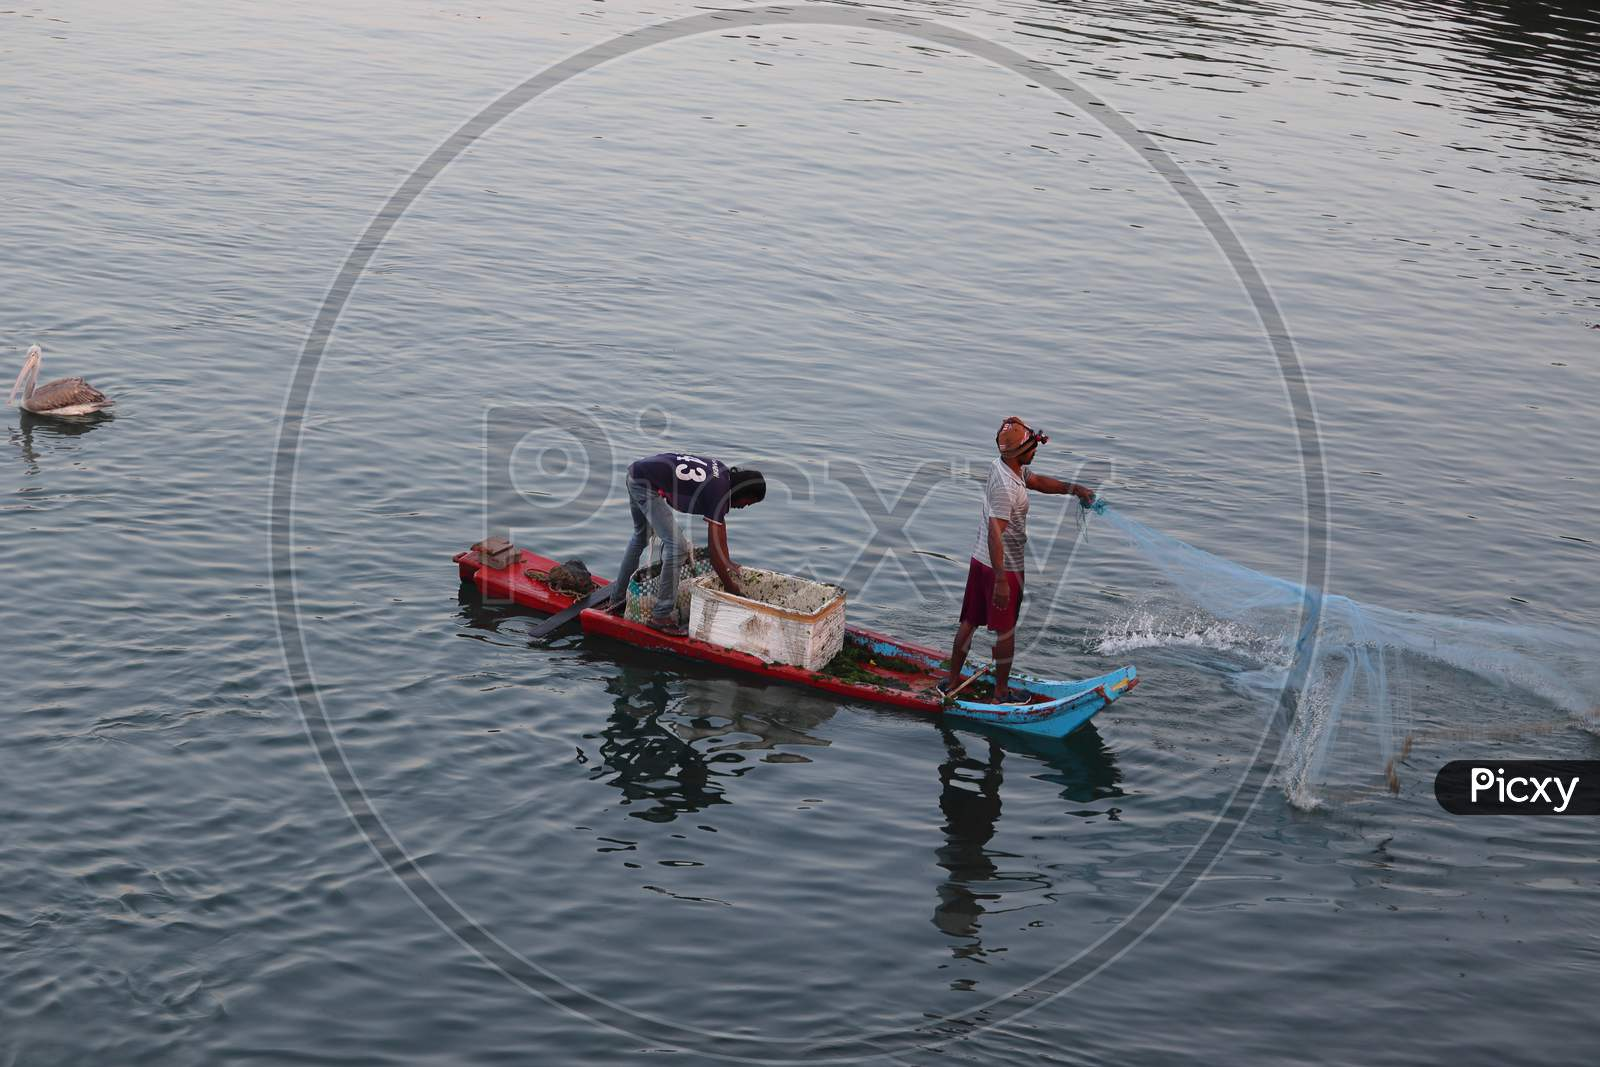 Fisherman Throws Nets Into The Water To Catch Fish From The Boat